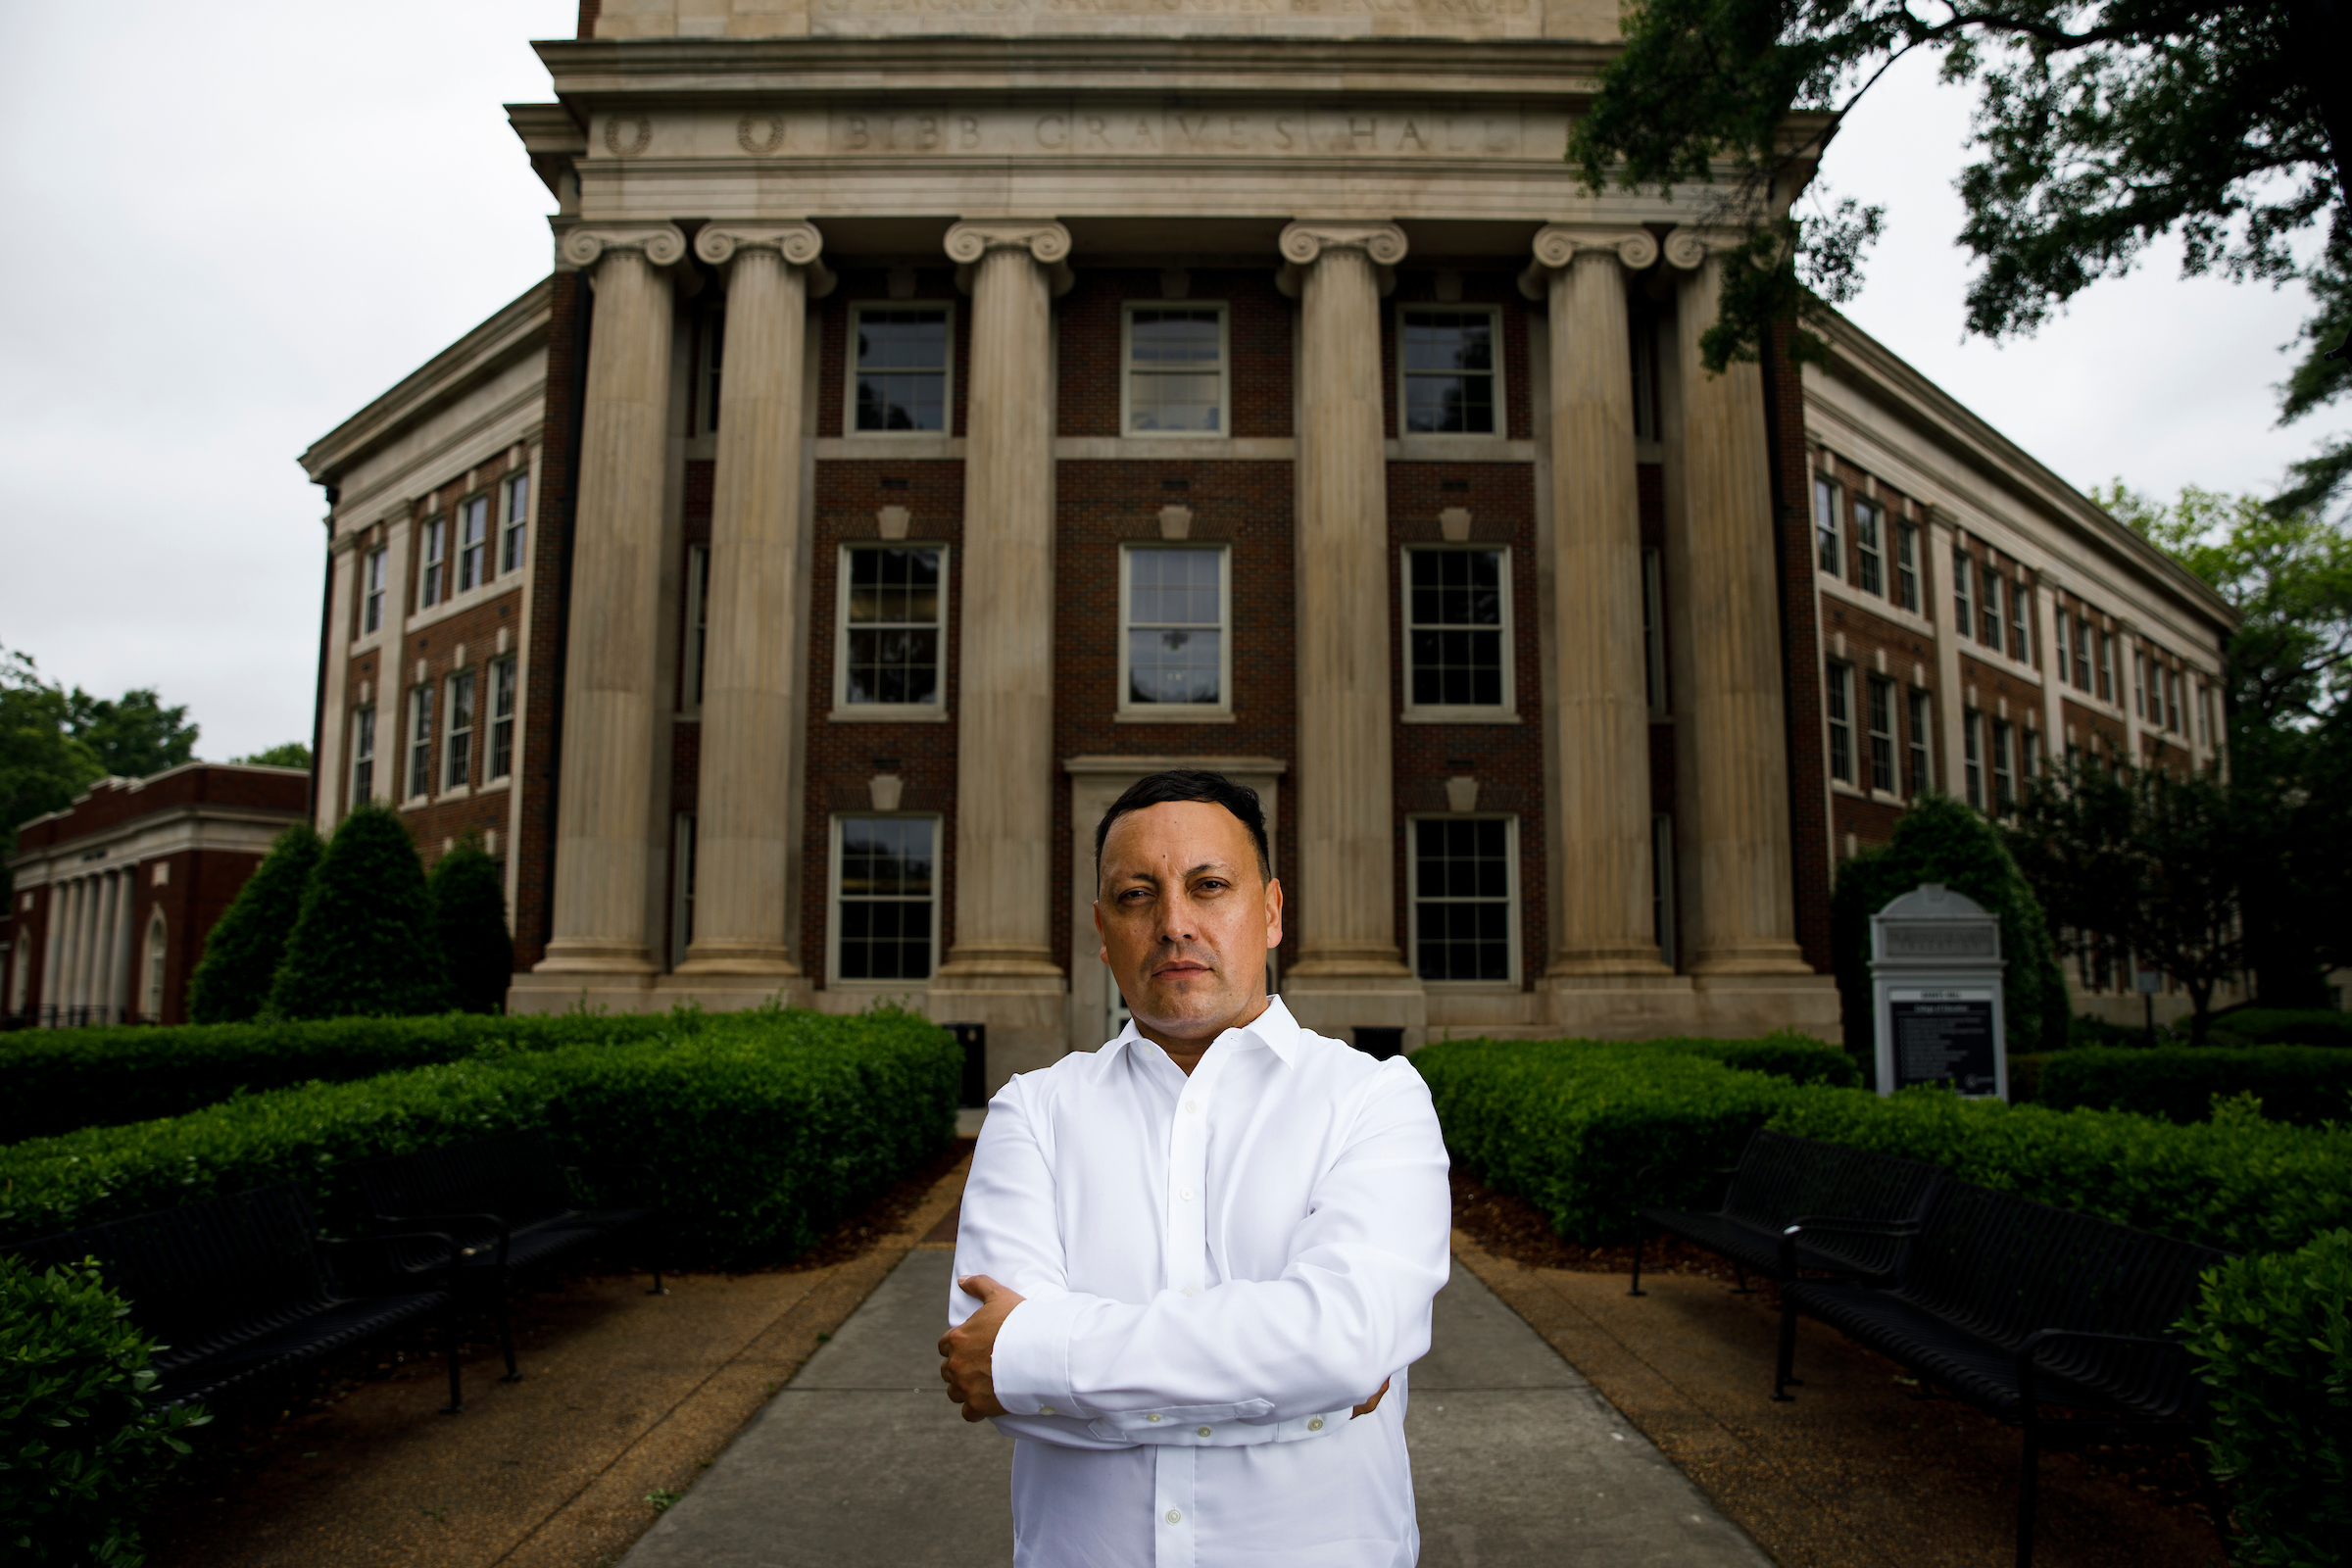 Julio Gomez, a Colombian graduate student at The University of Alabama